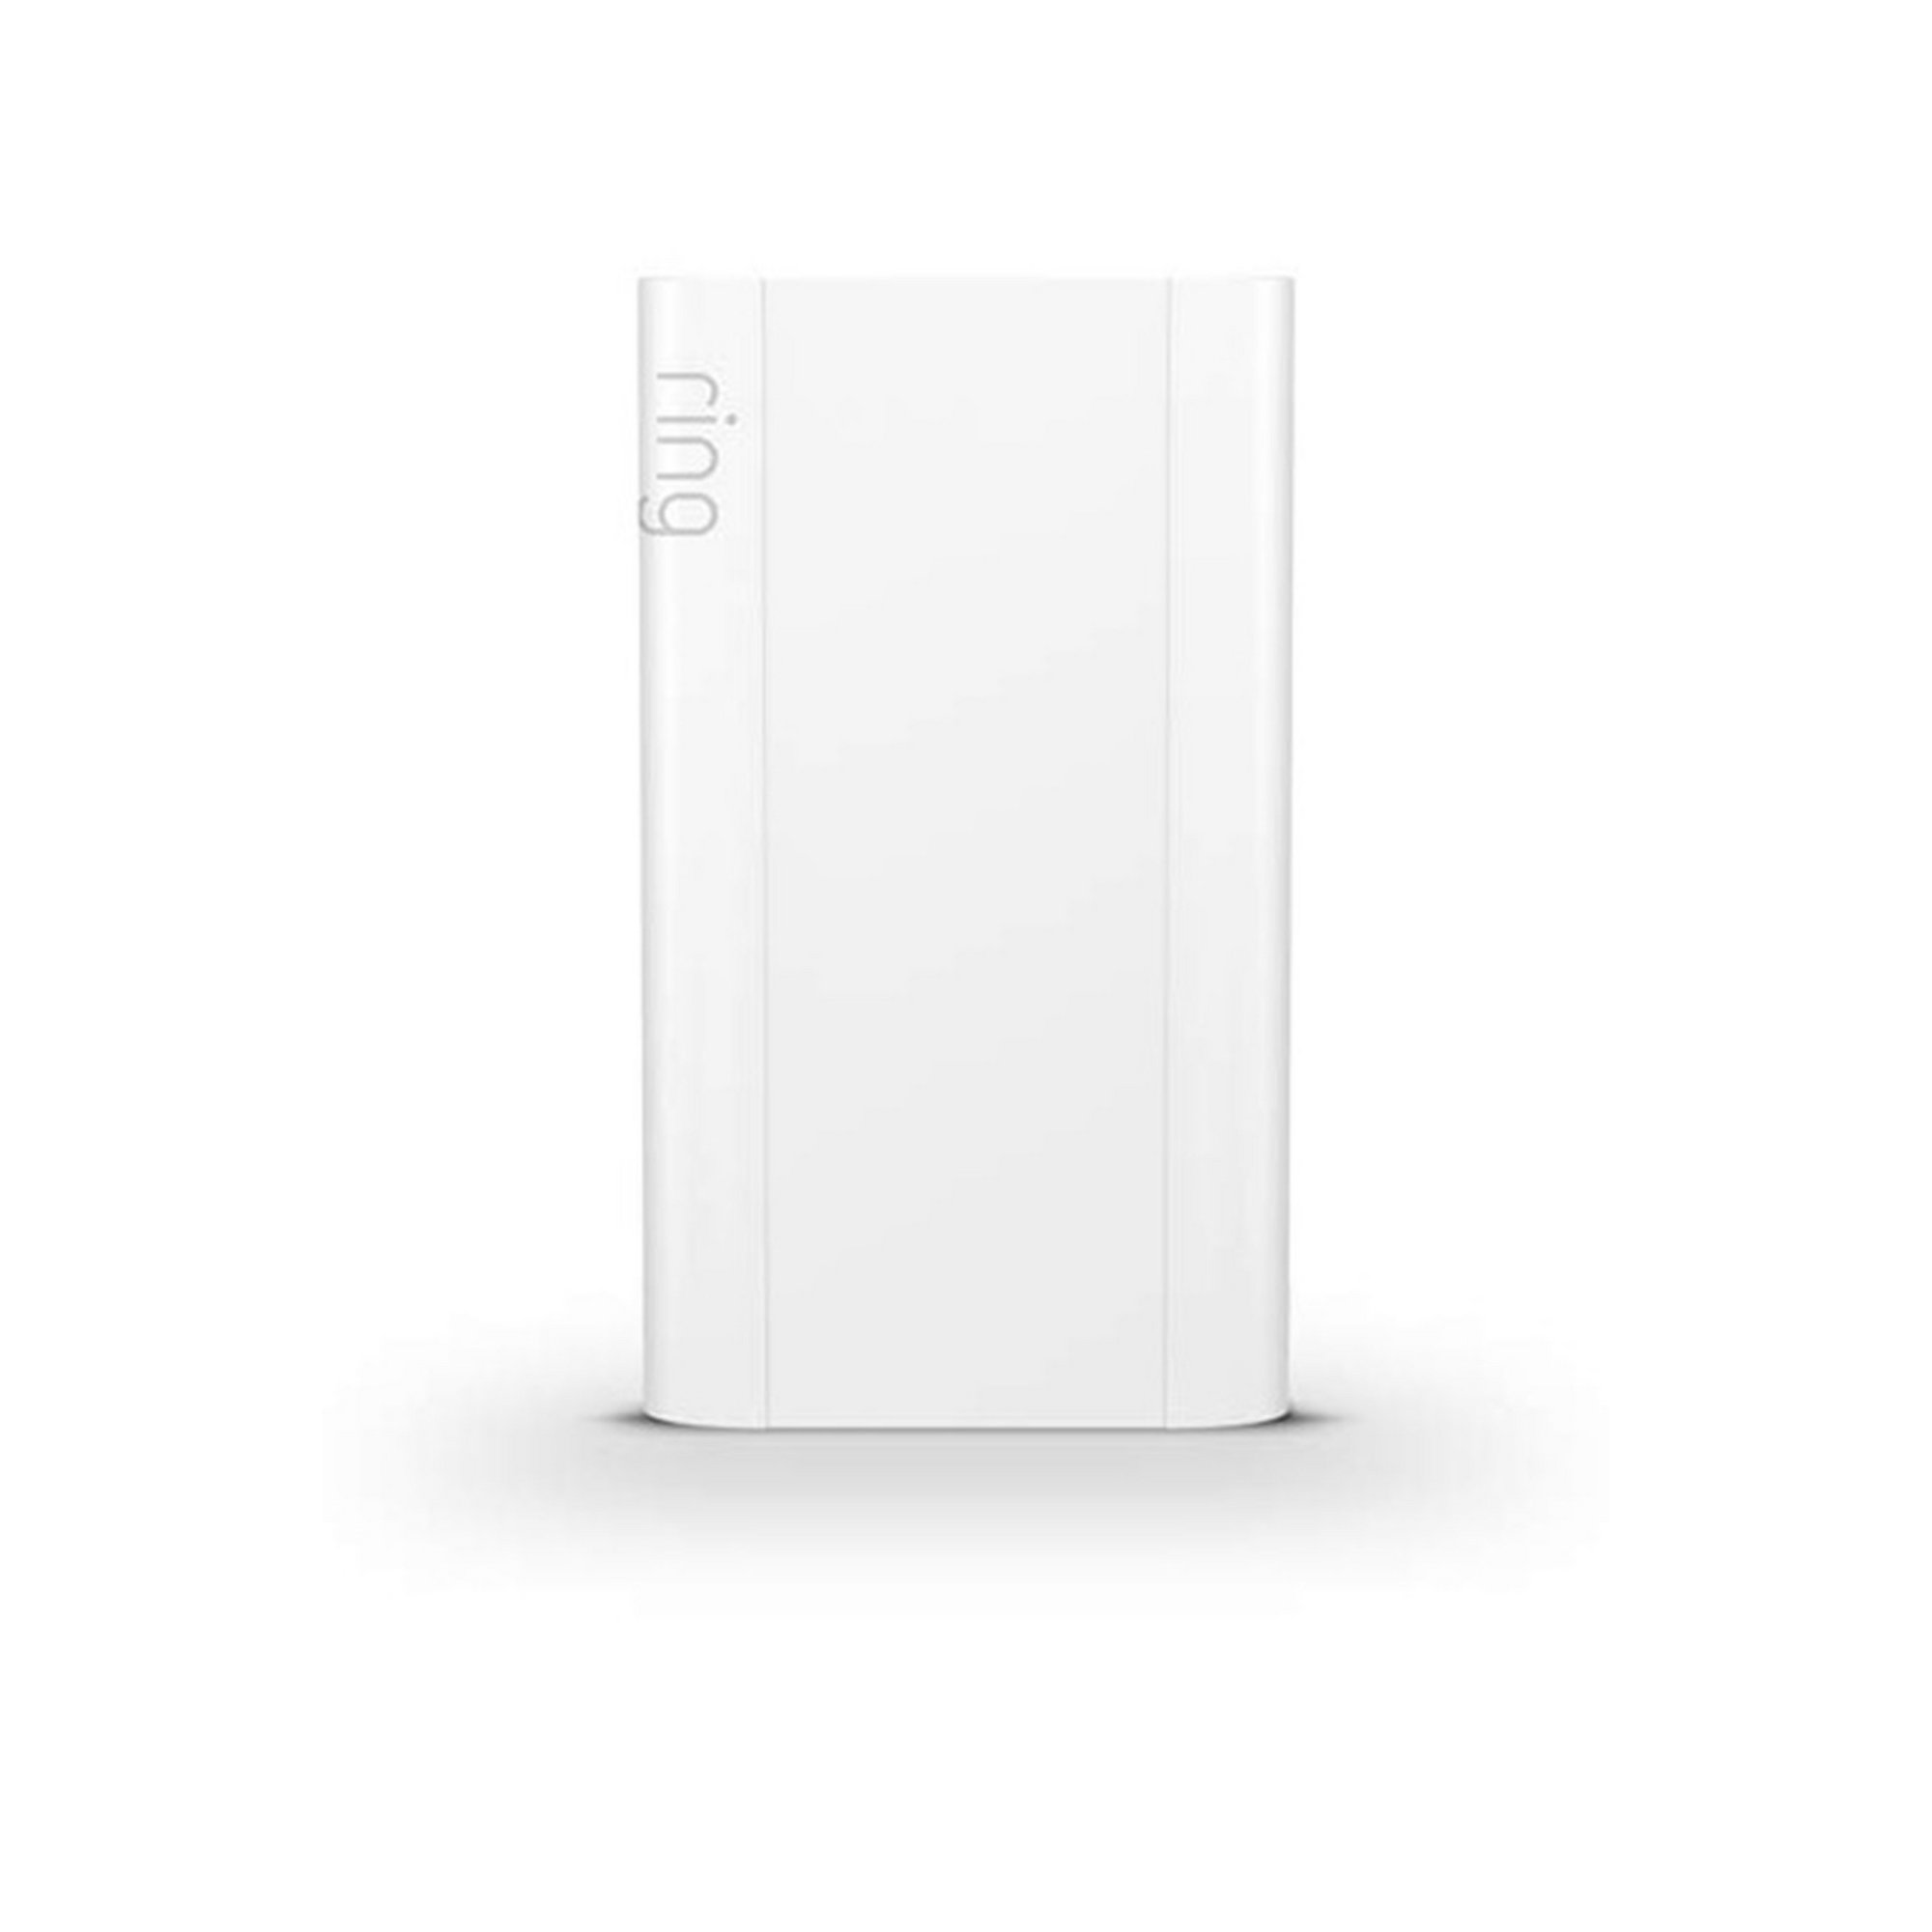 Image of Ring Alarm Range Extender